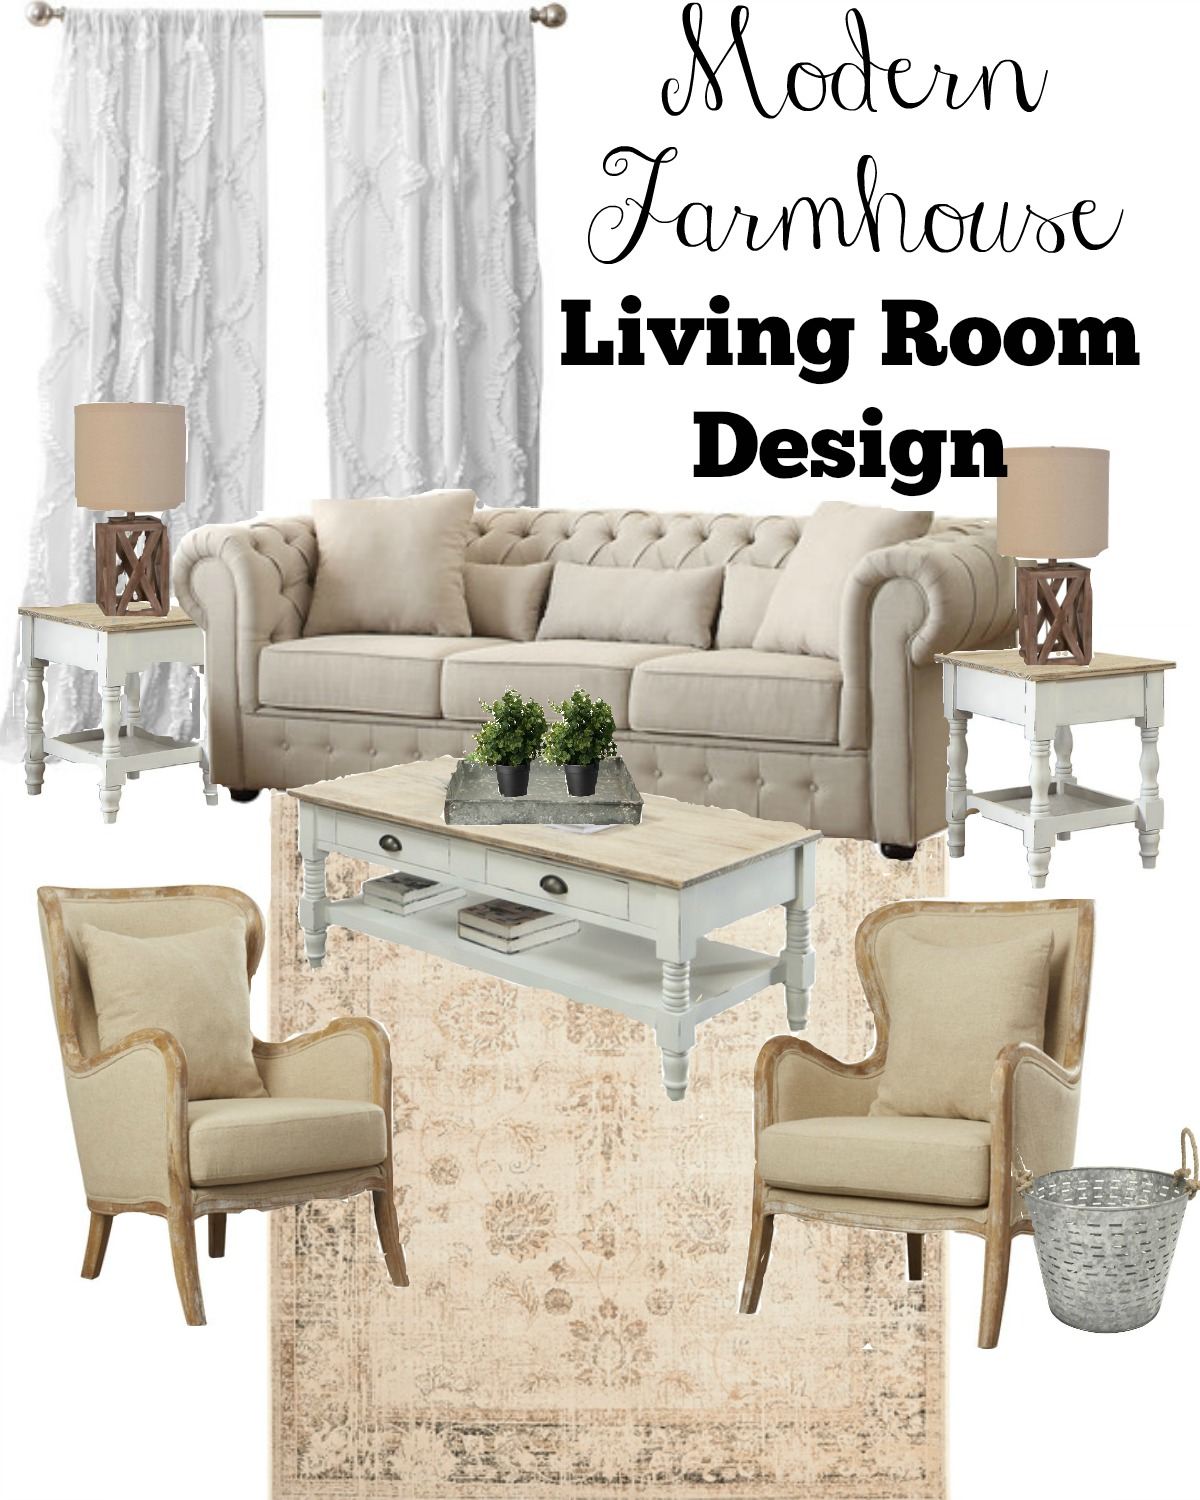 Farmhouse Living Room Decor Ideas: 3 Key Tips For A Farmhouse Style Living Room